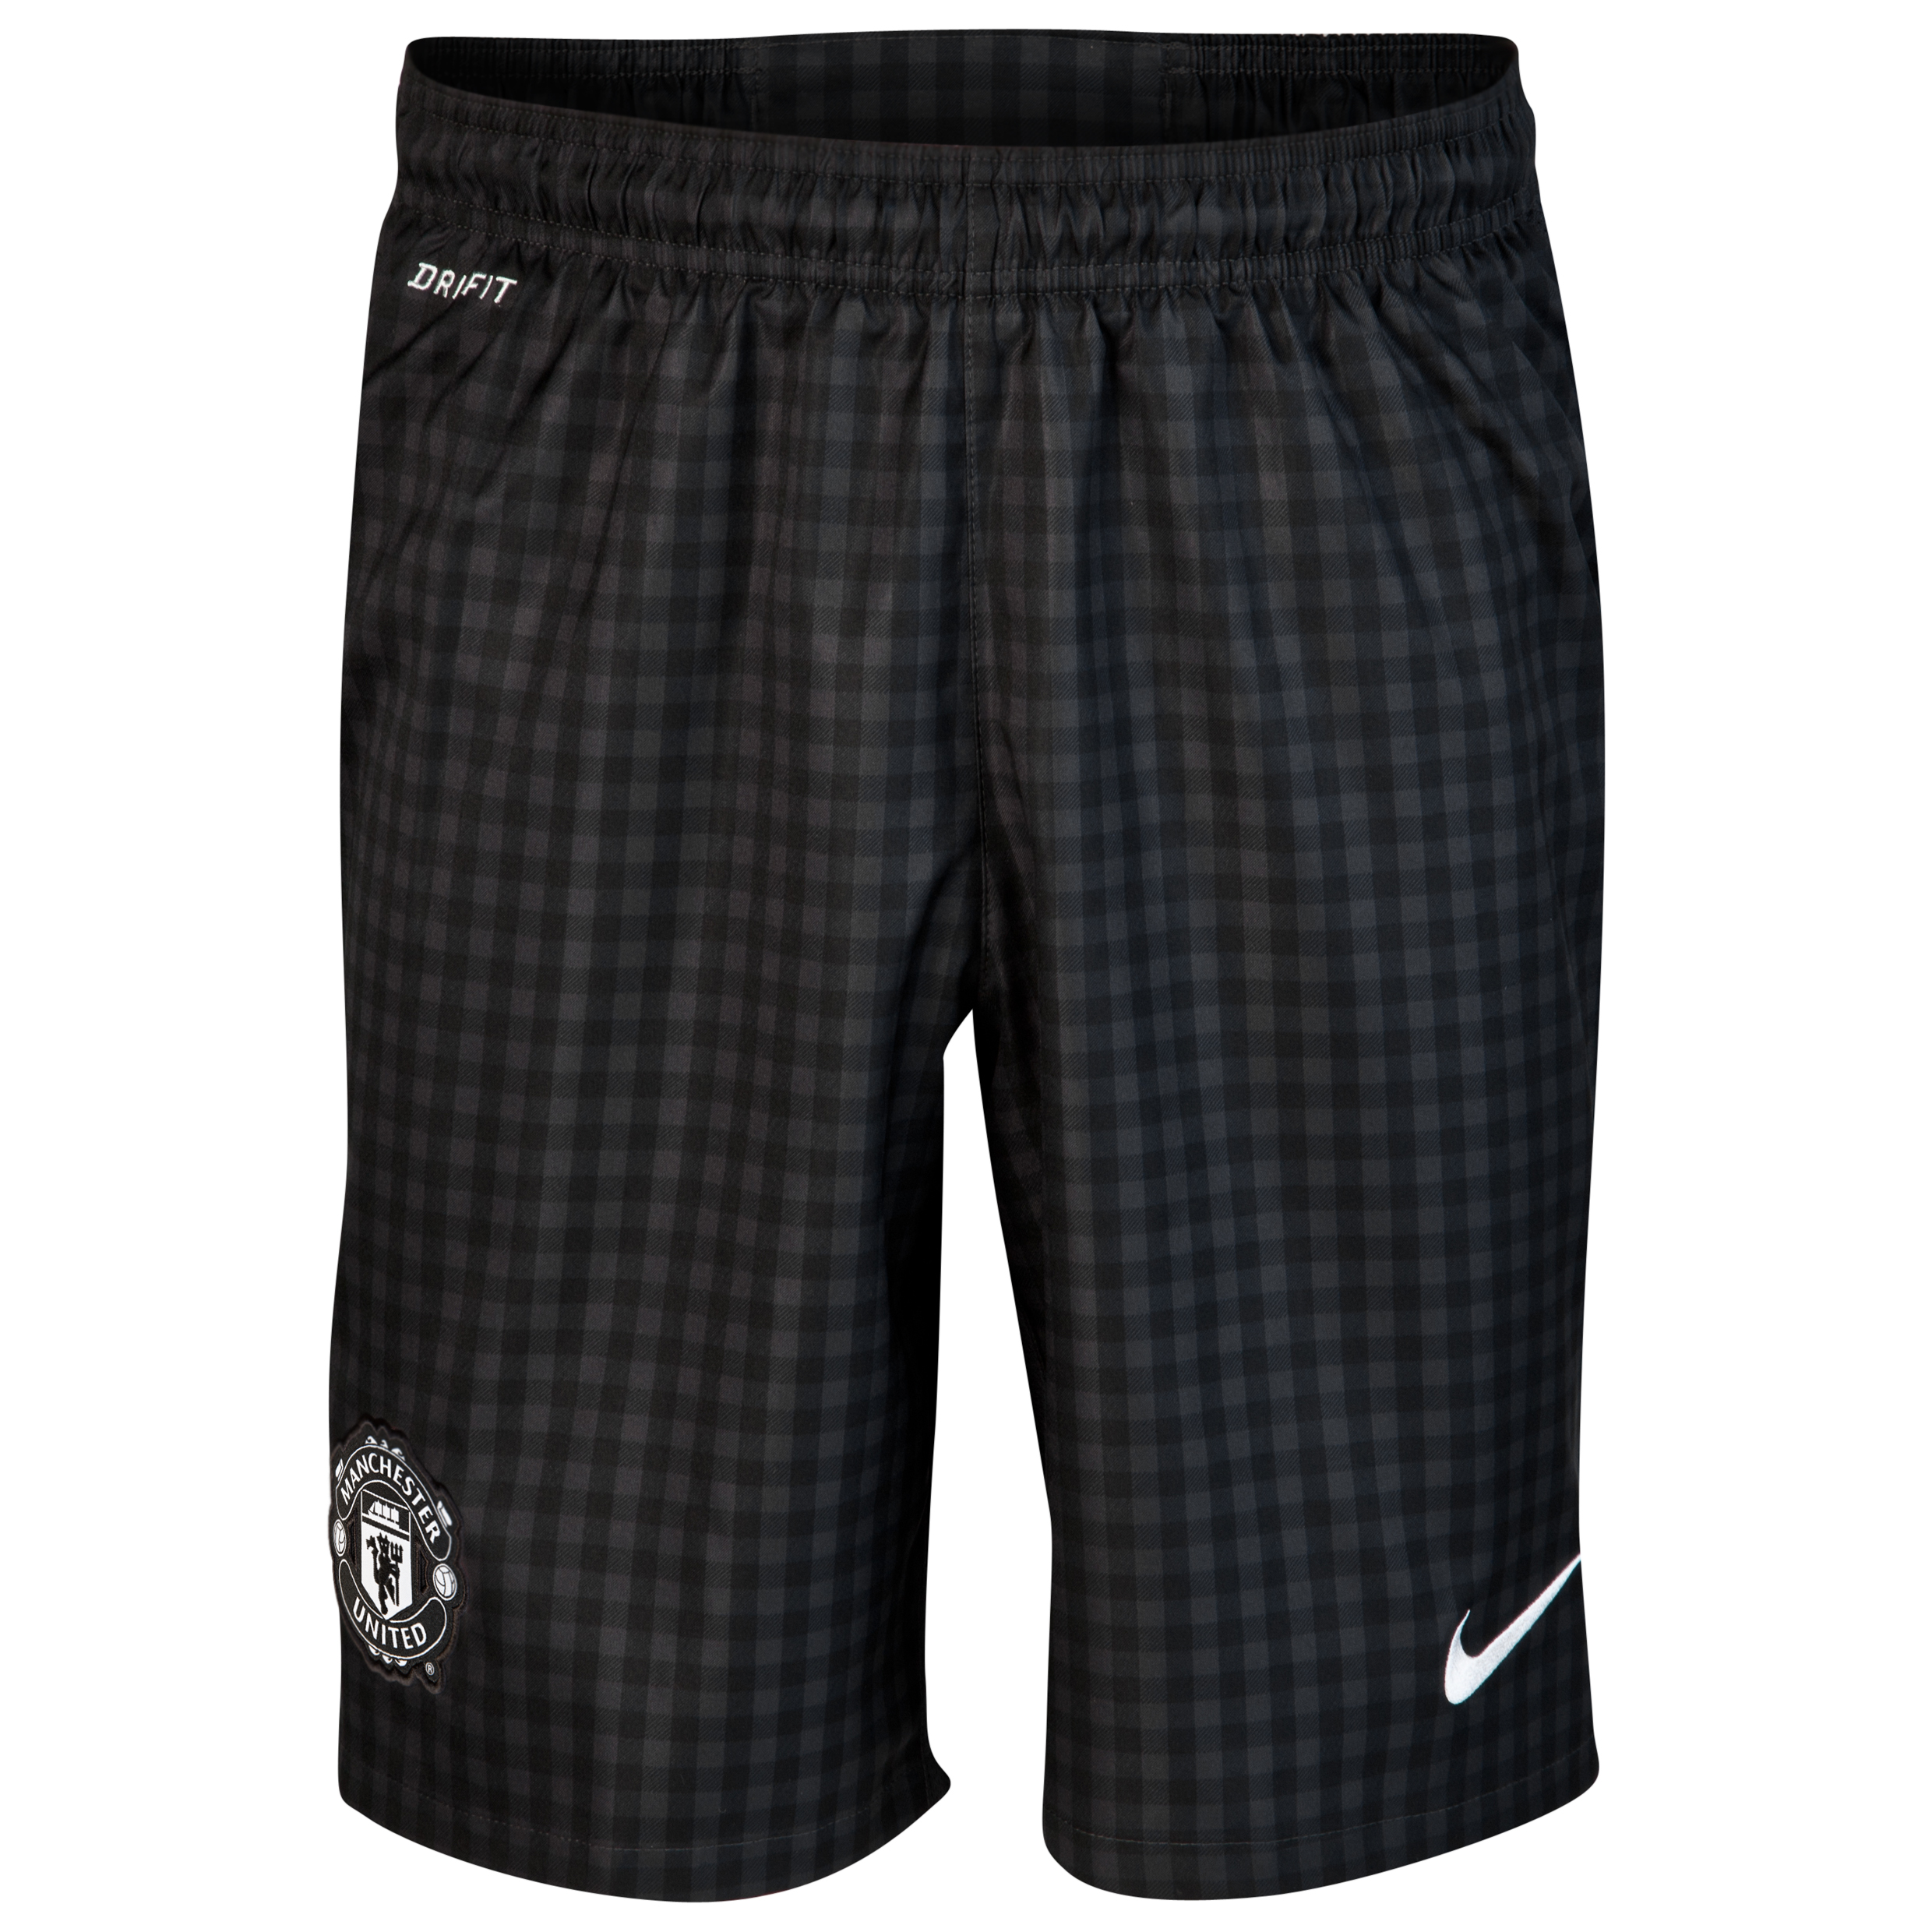 Manchester United Away Short 2012/13